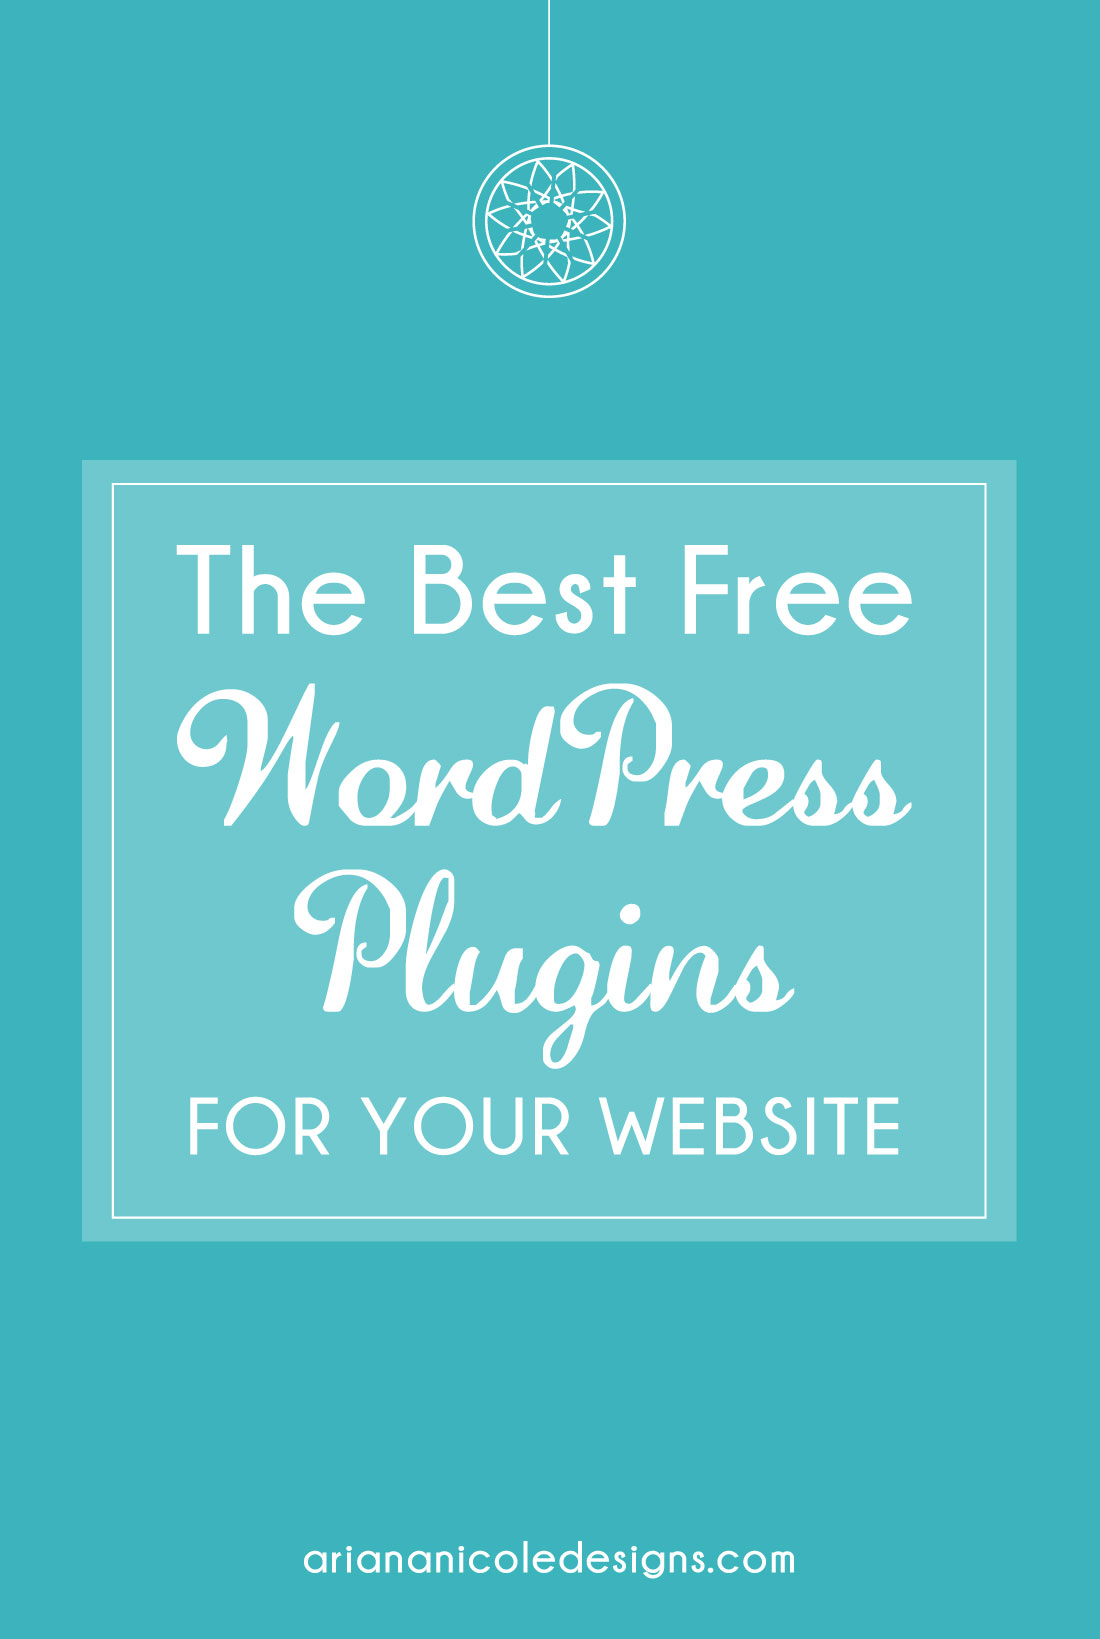 The-Best-Free-WordPress-Plugins-For-Your-Website-1100px